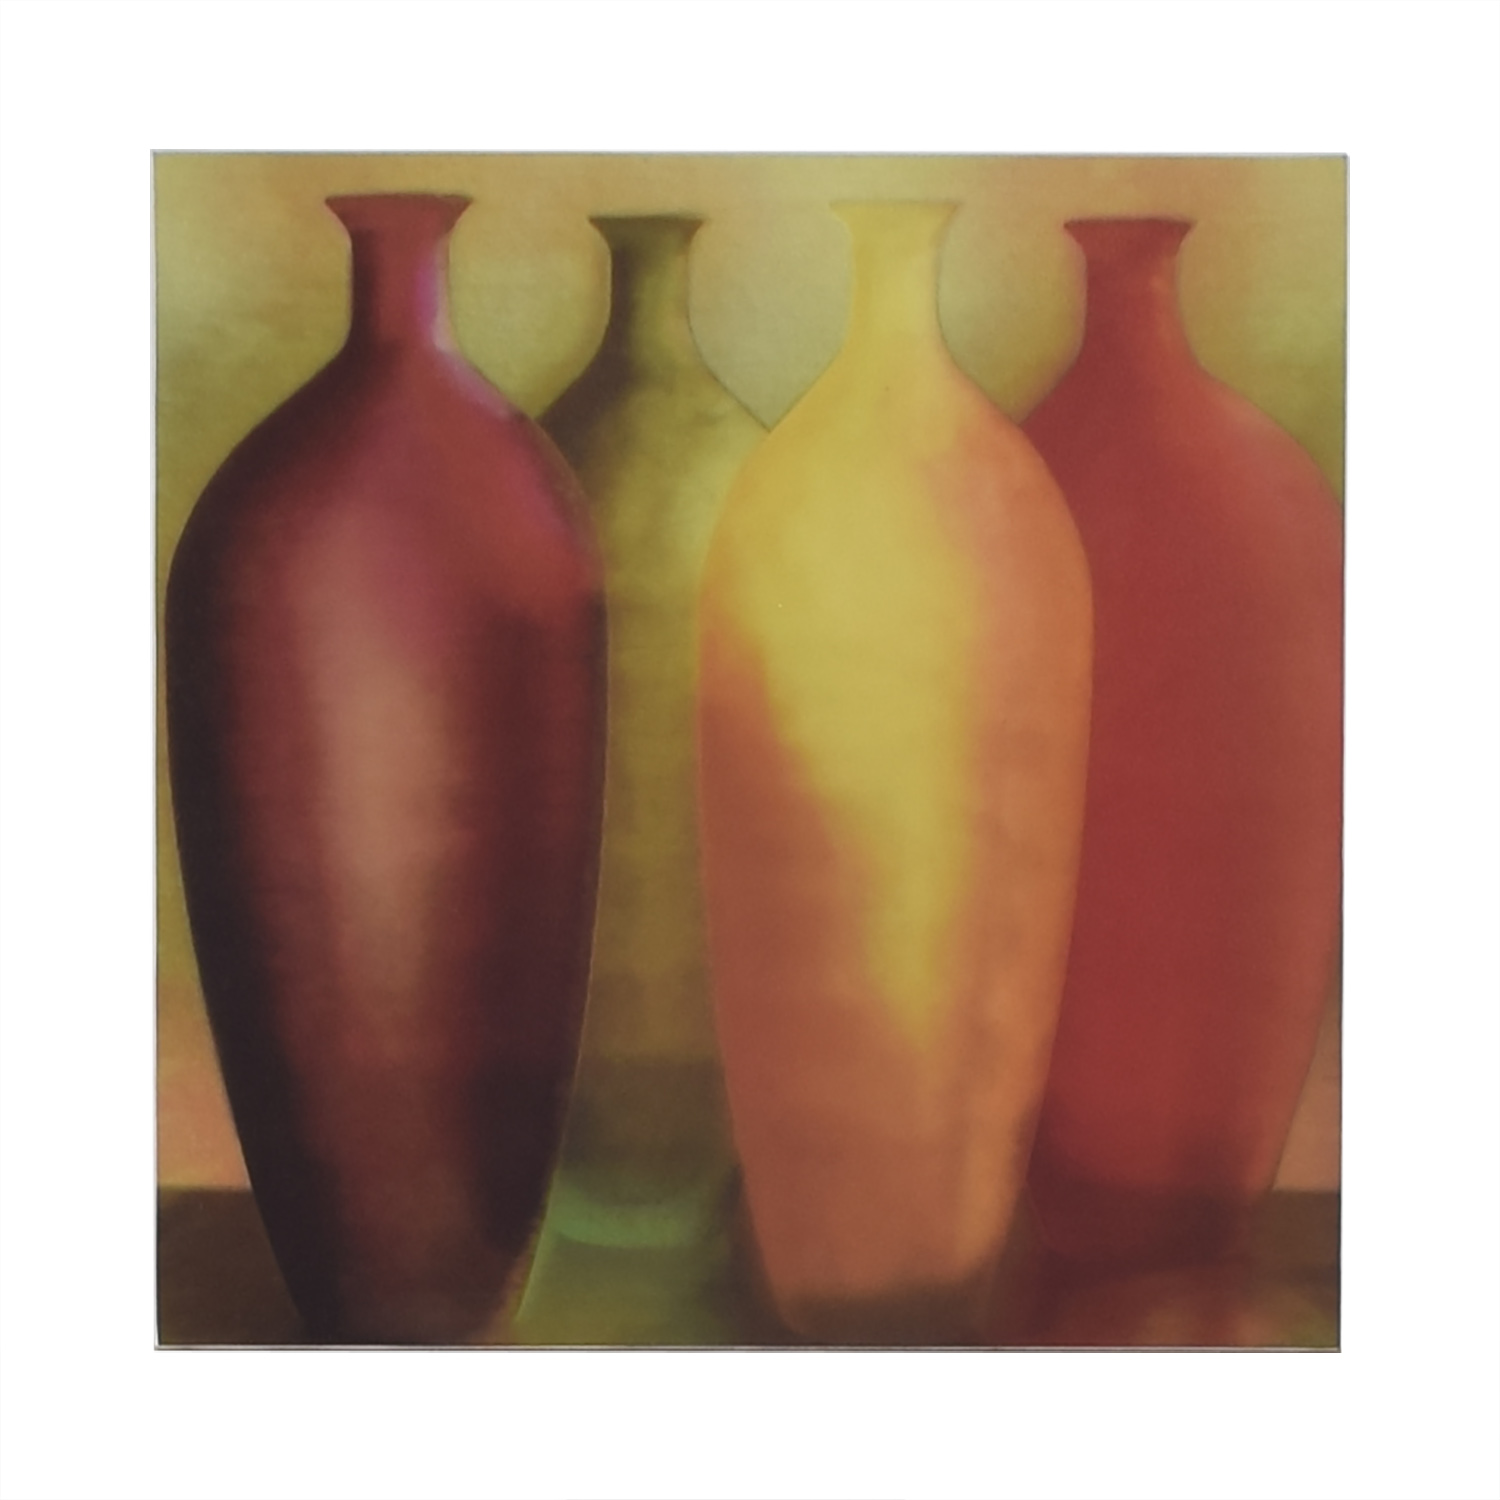 buy Vase Wall Art on Canvas